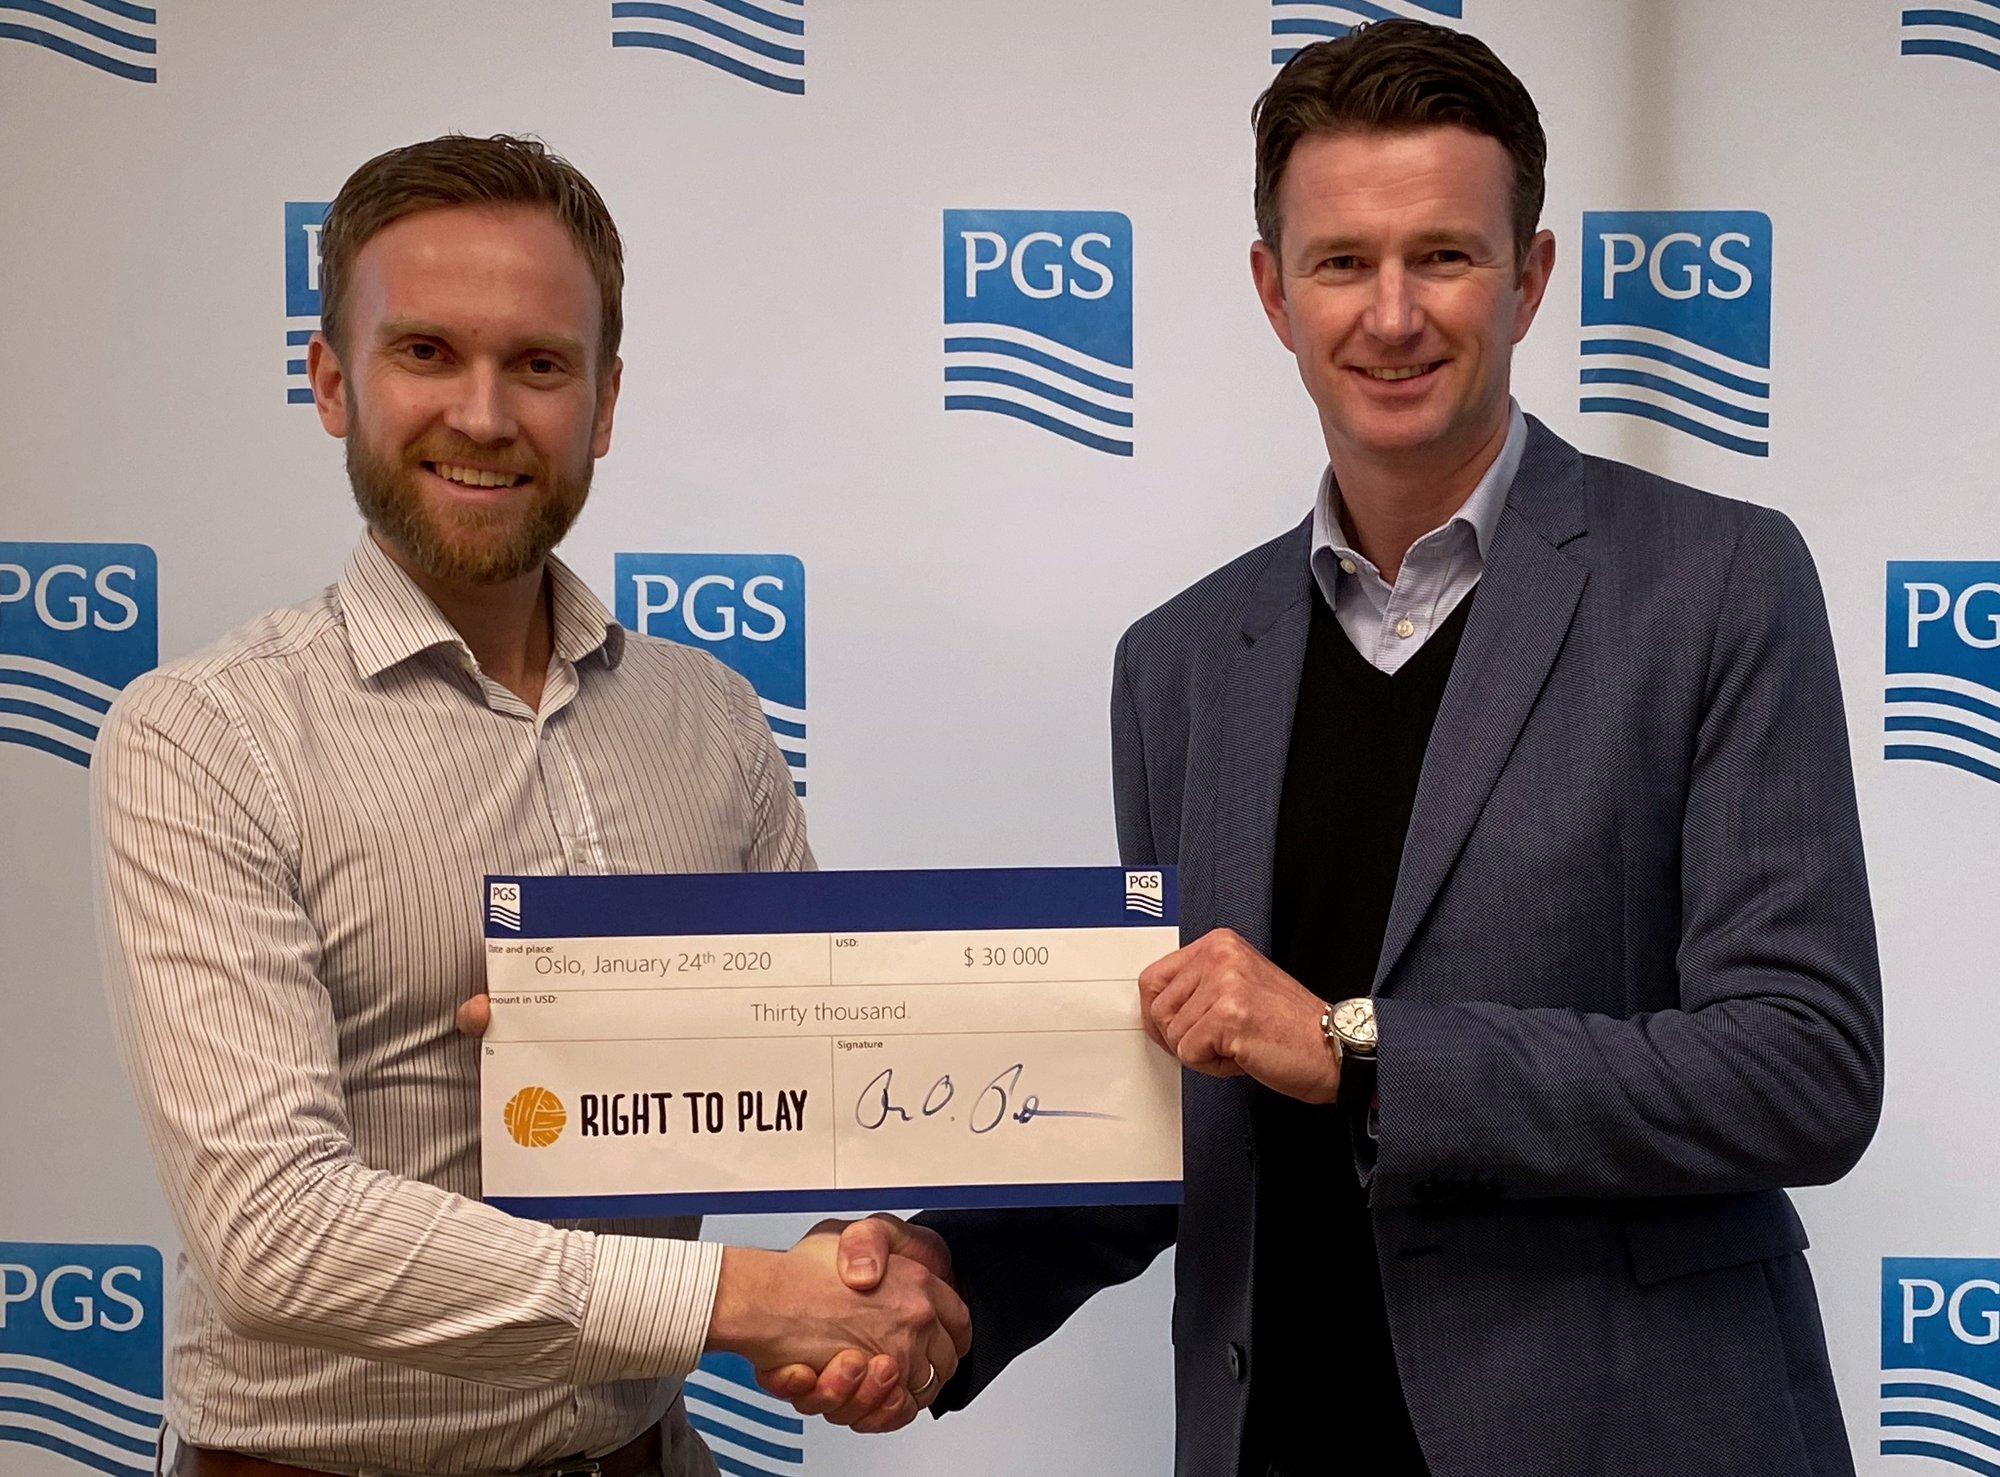 PGS President and CEO Rune Olav Pedersen and Jimmy Vika